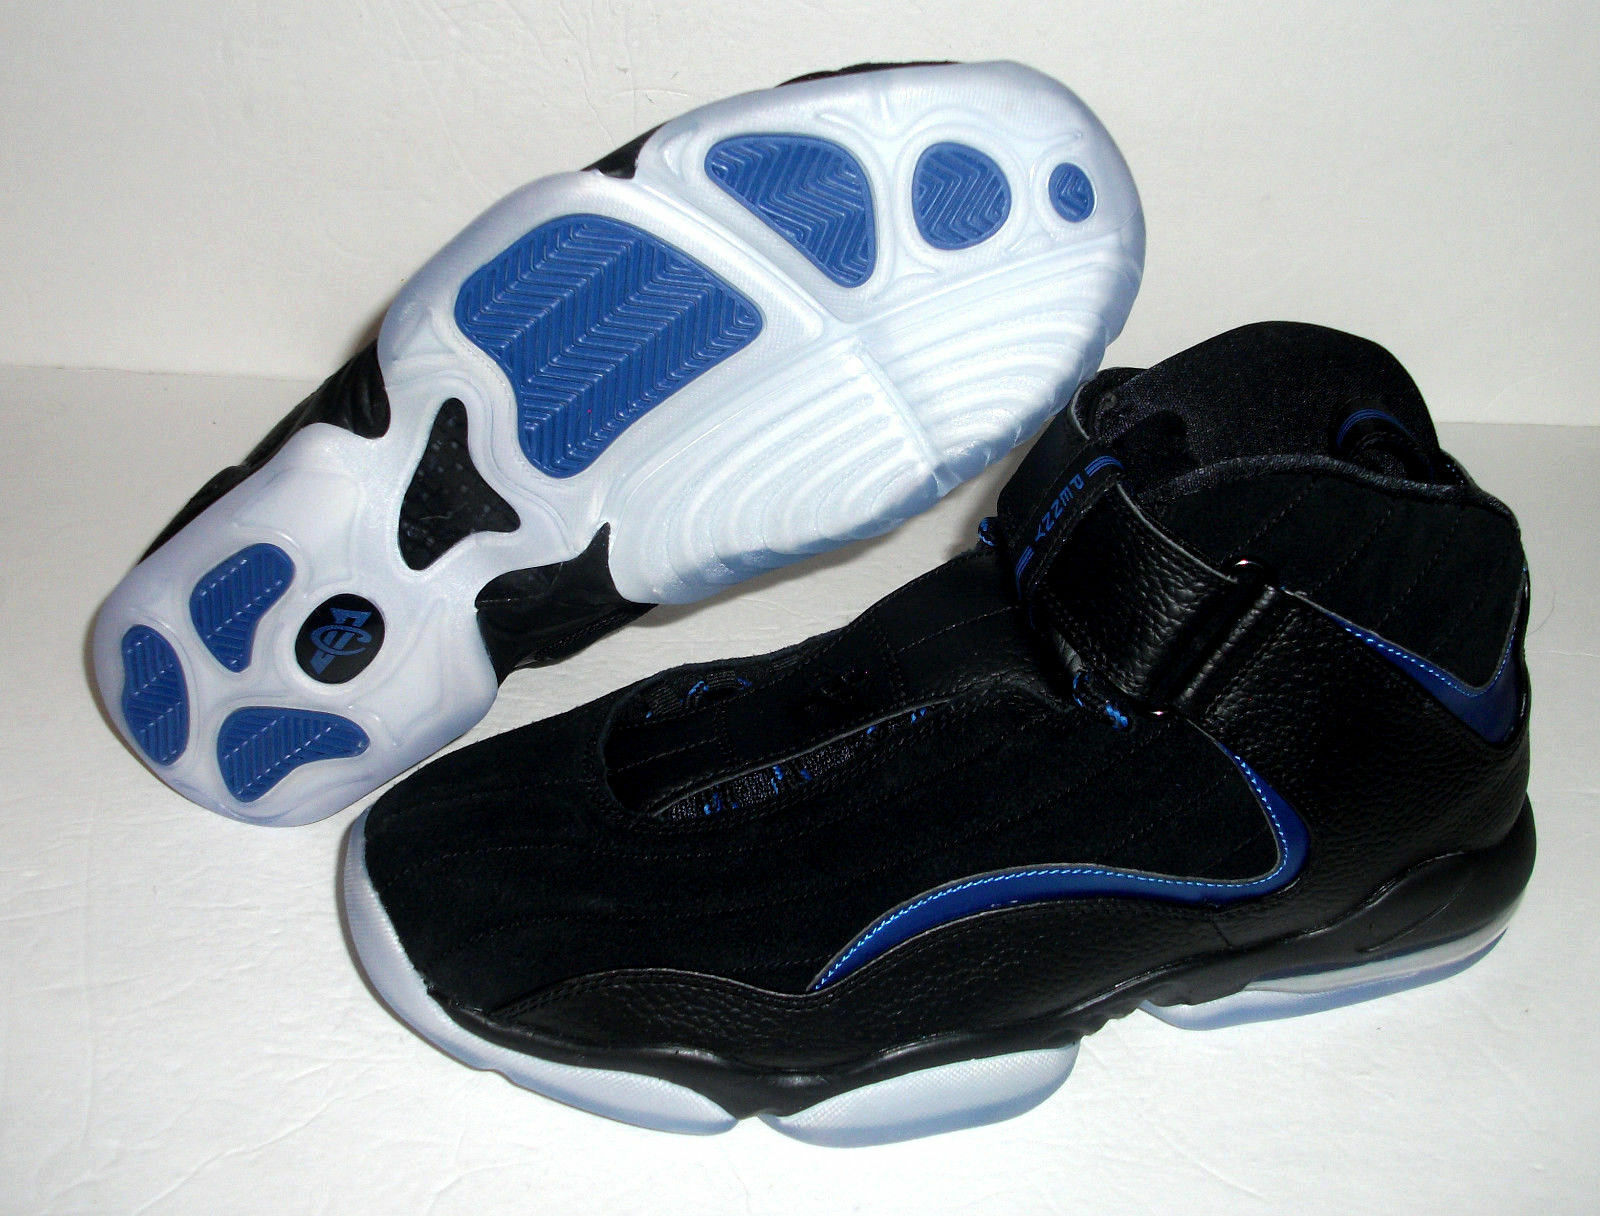 New Nike Air Penny IV 4 Basketball , Men's Size 10.5-11, Black blueee, 864018-001